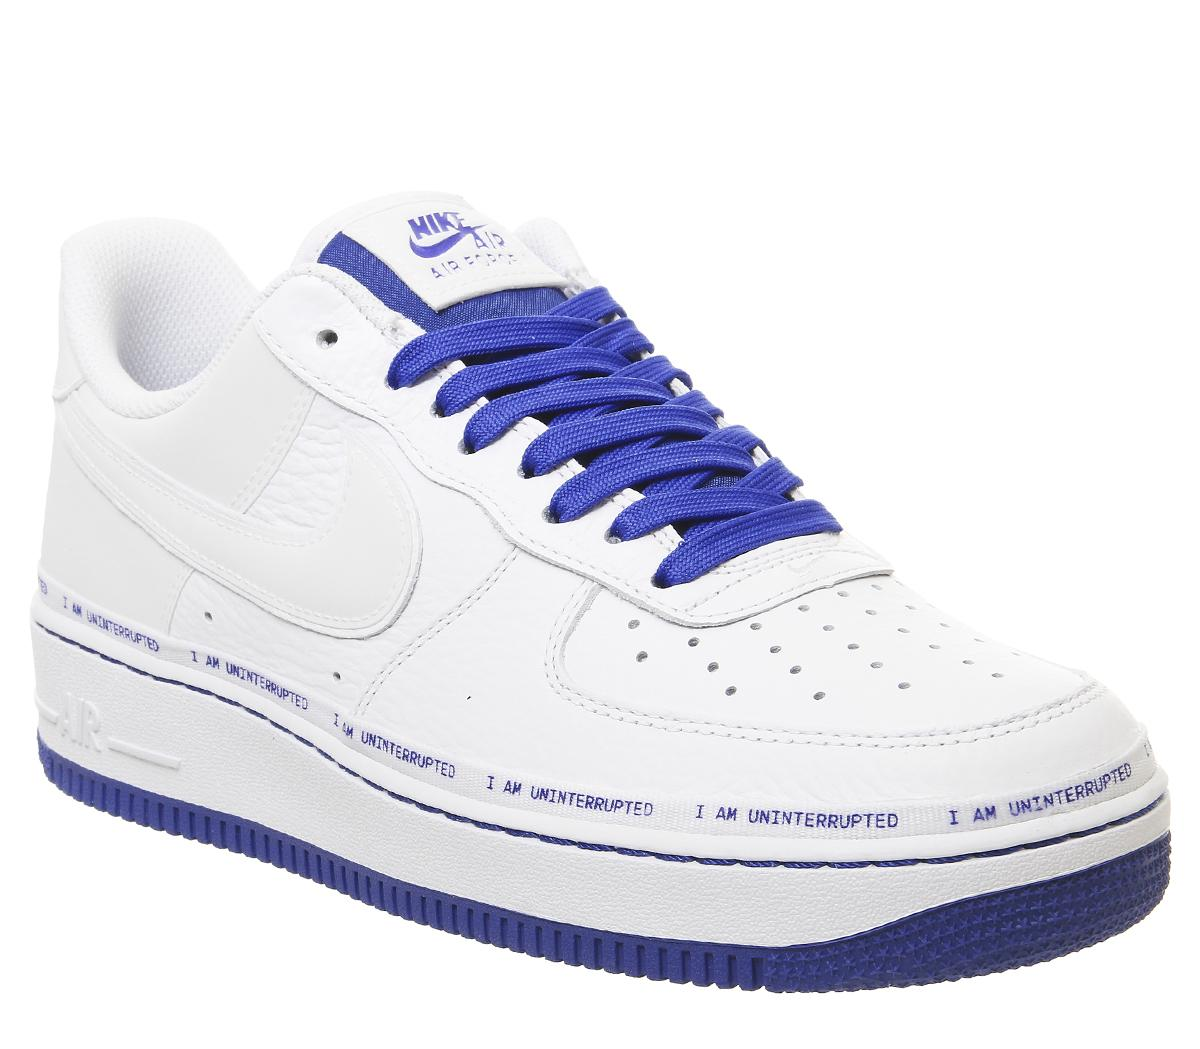 Humano Propuesta Pies suaves  Nike Air Force 1 07 Trainers Mtaa White Black Racer Blue - Hers trainers